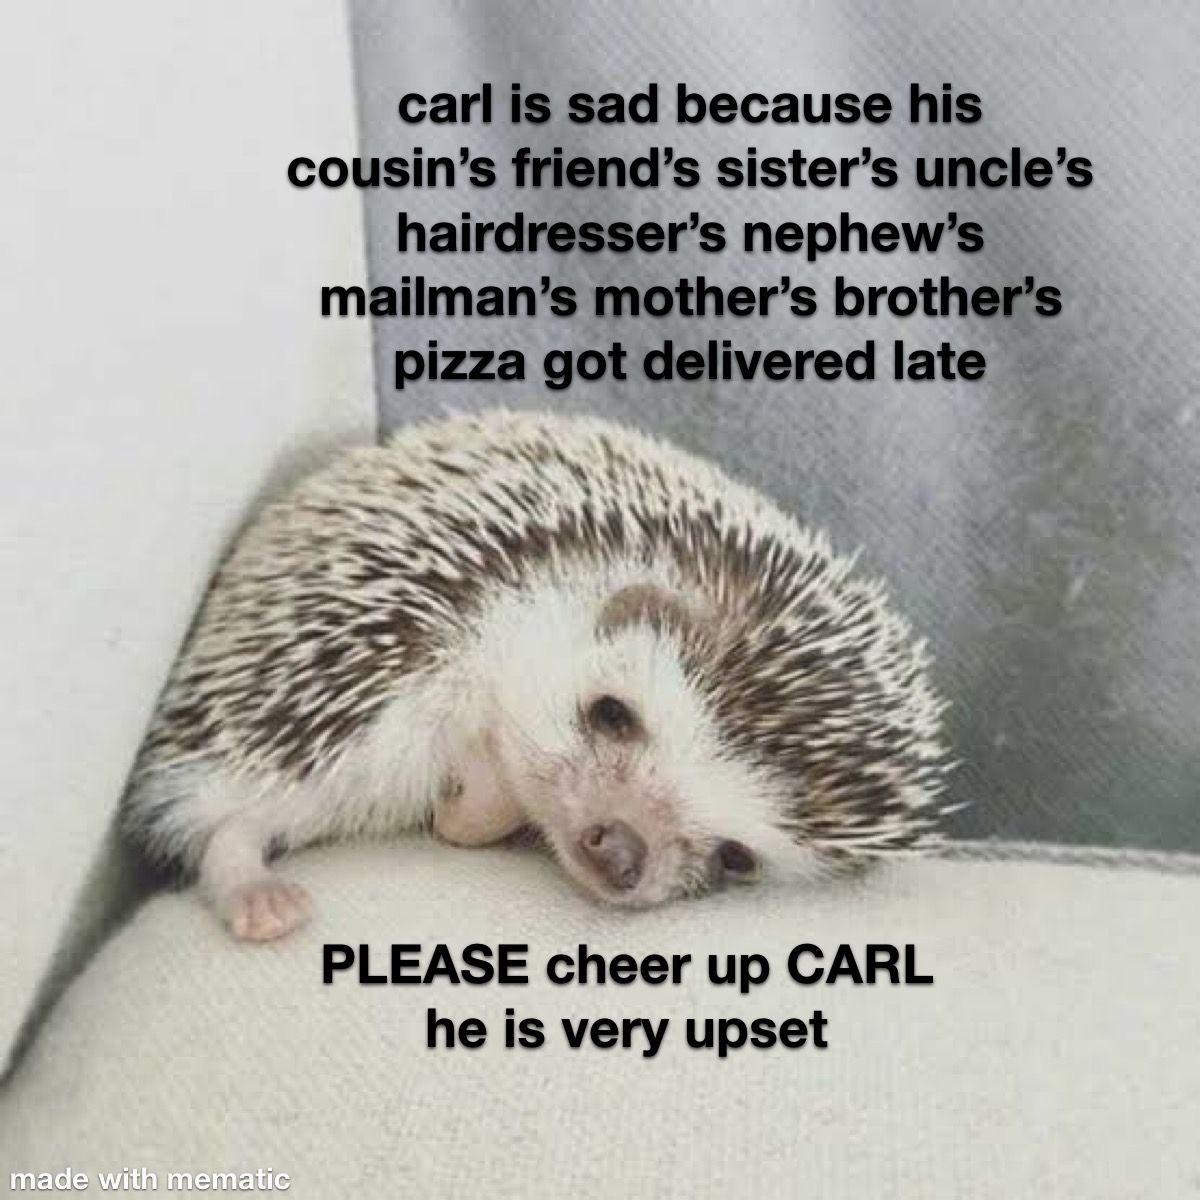 Pin By Katie Duwall On Carl The Hedgehog Funny Memes Images Happy Memes Funny Internet Memes